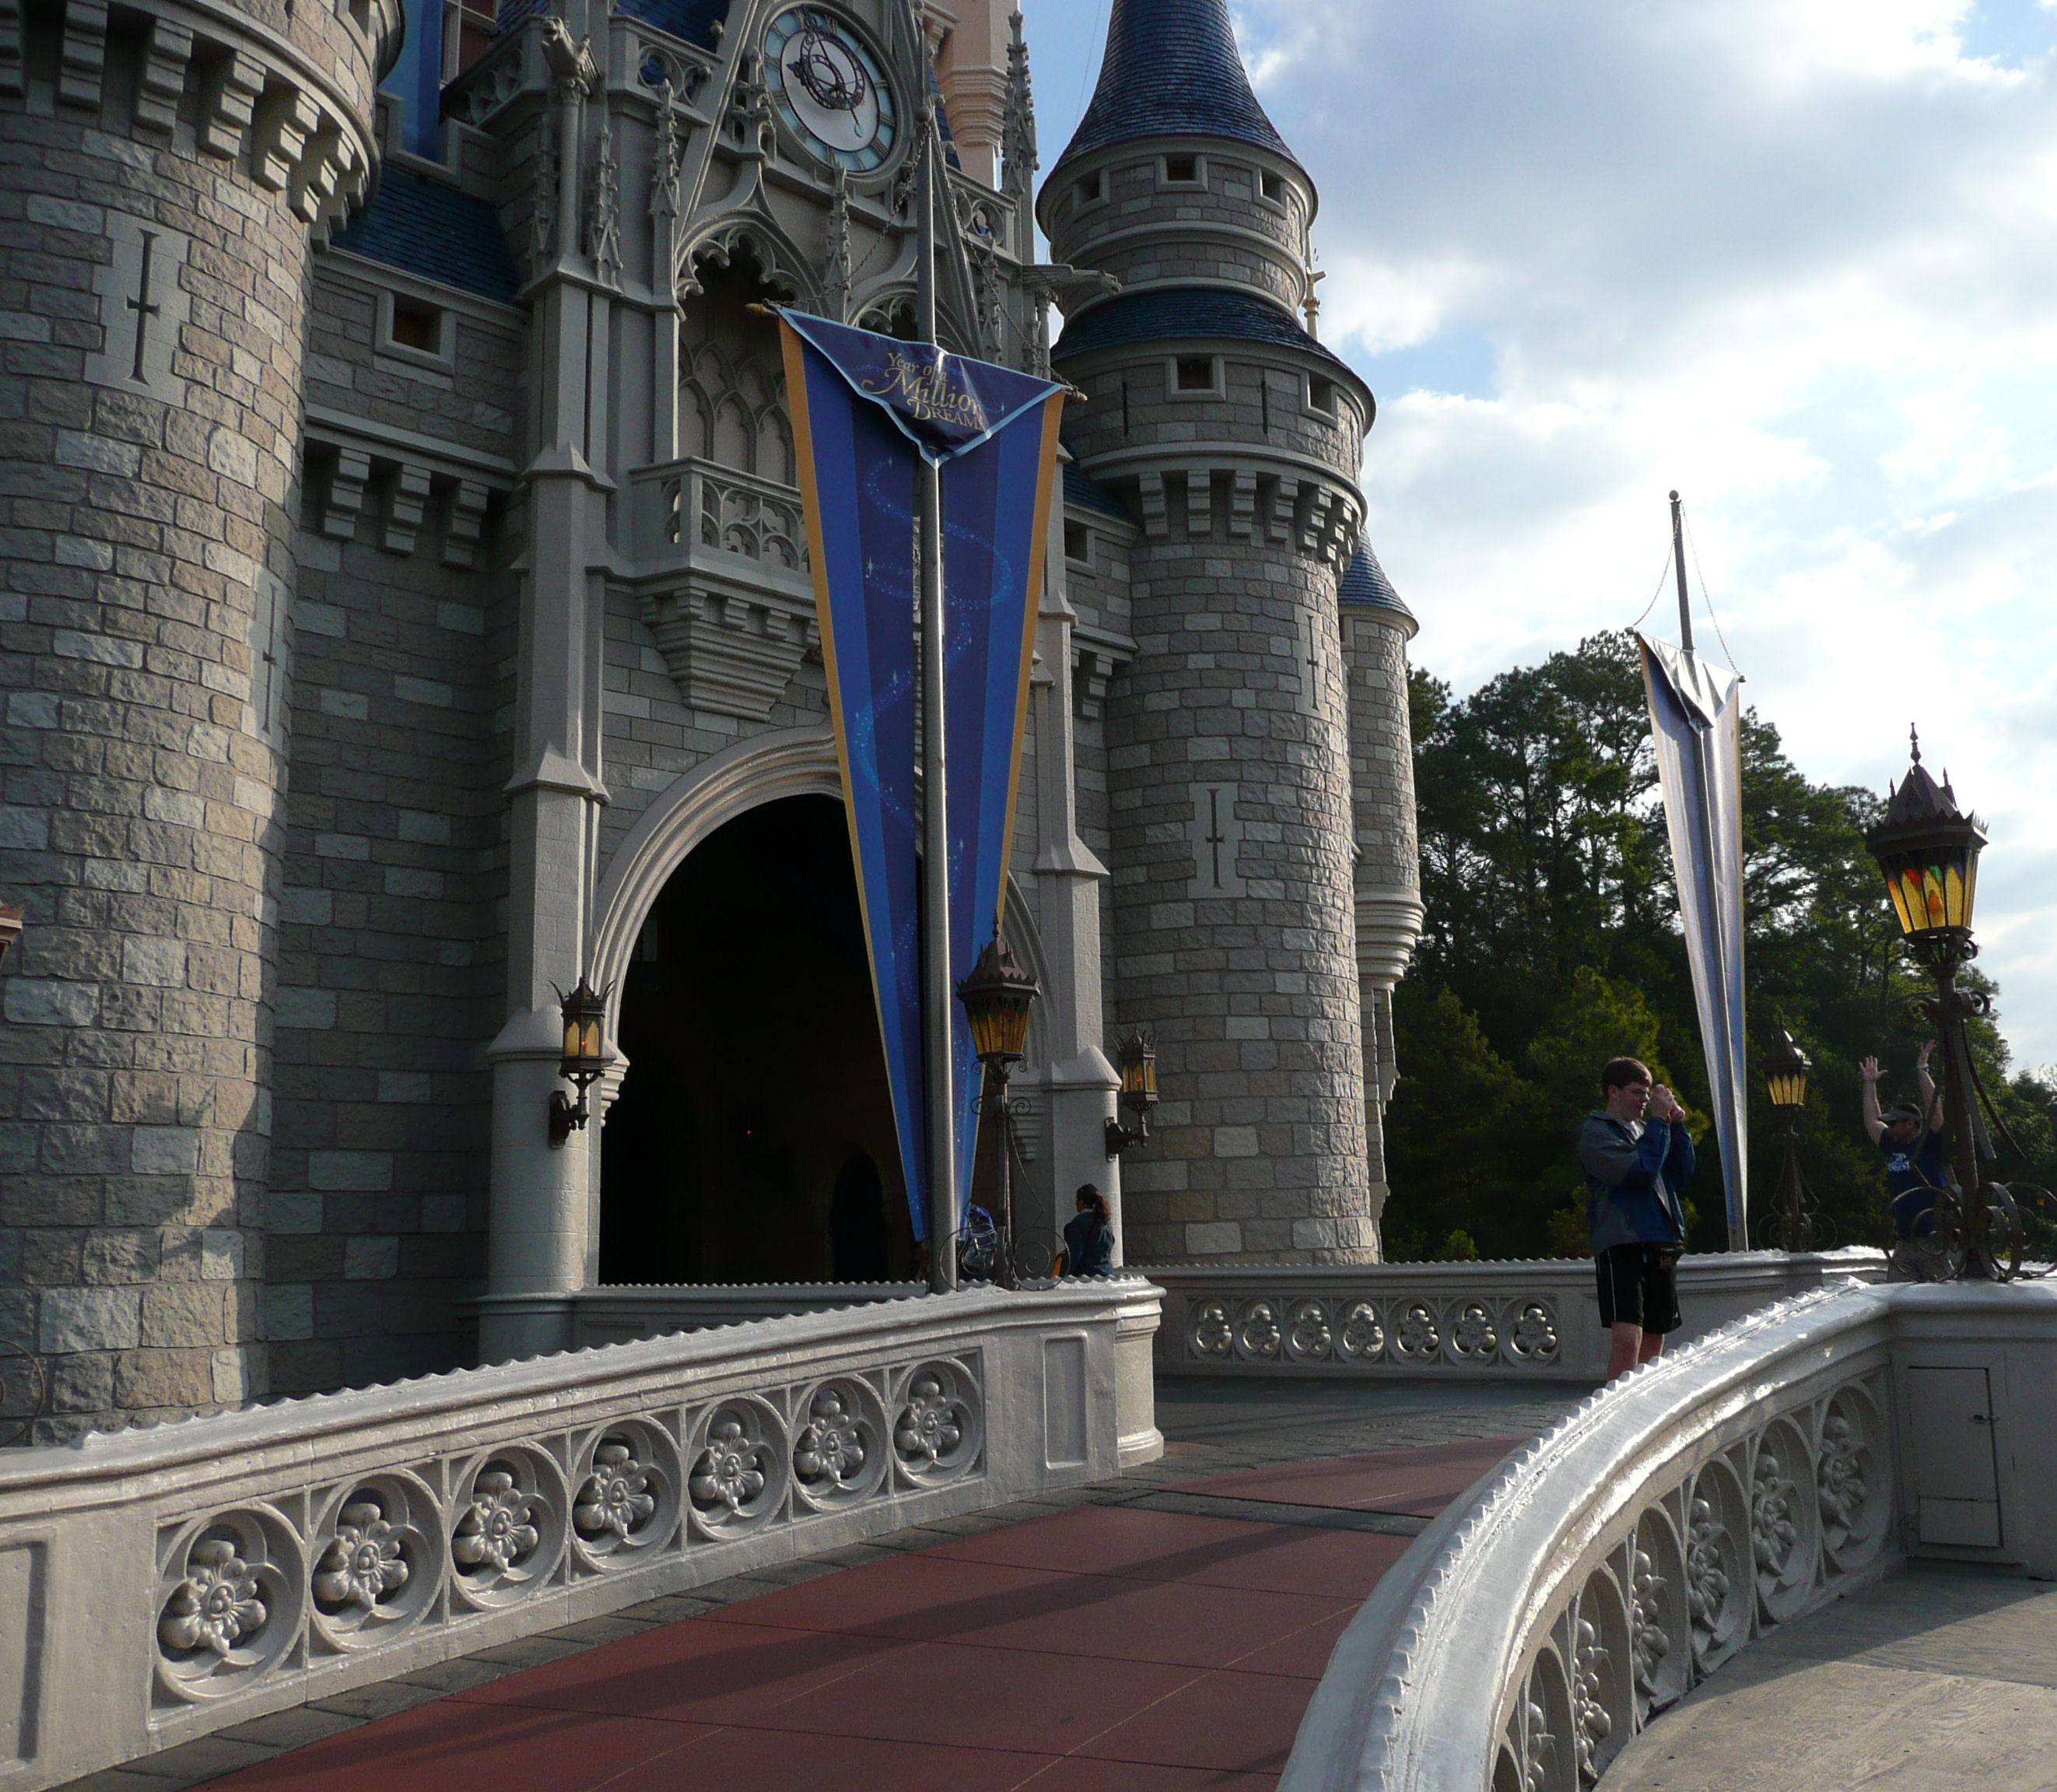 Capturing the magic in front of Cinderella's Castle at Disney World!